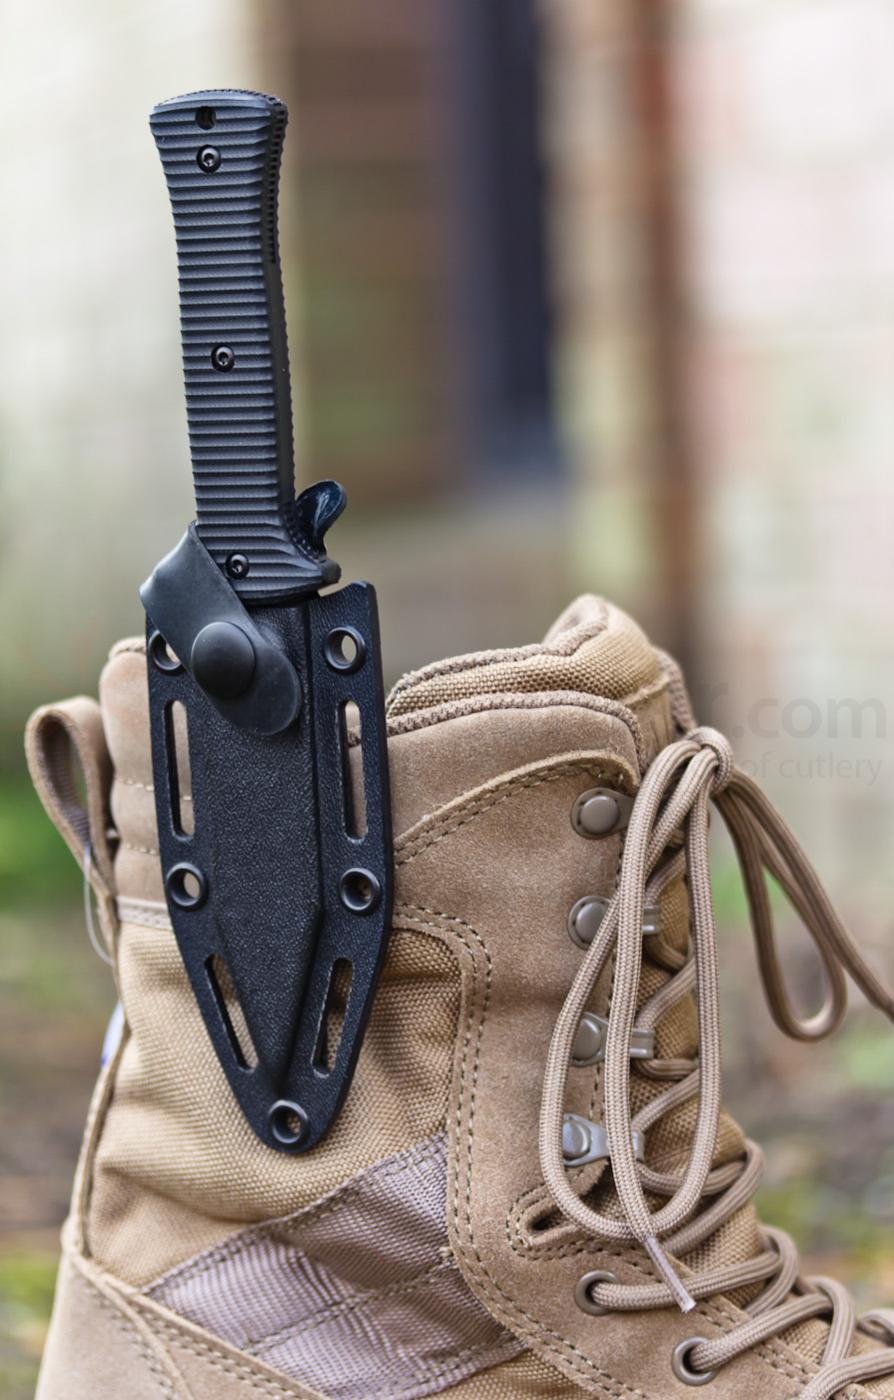 Zero Tolerance Model 0150 Boot Knife 3 1 2 Quot S30v Black